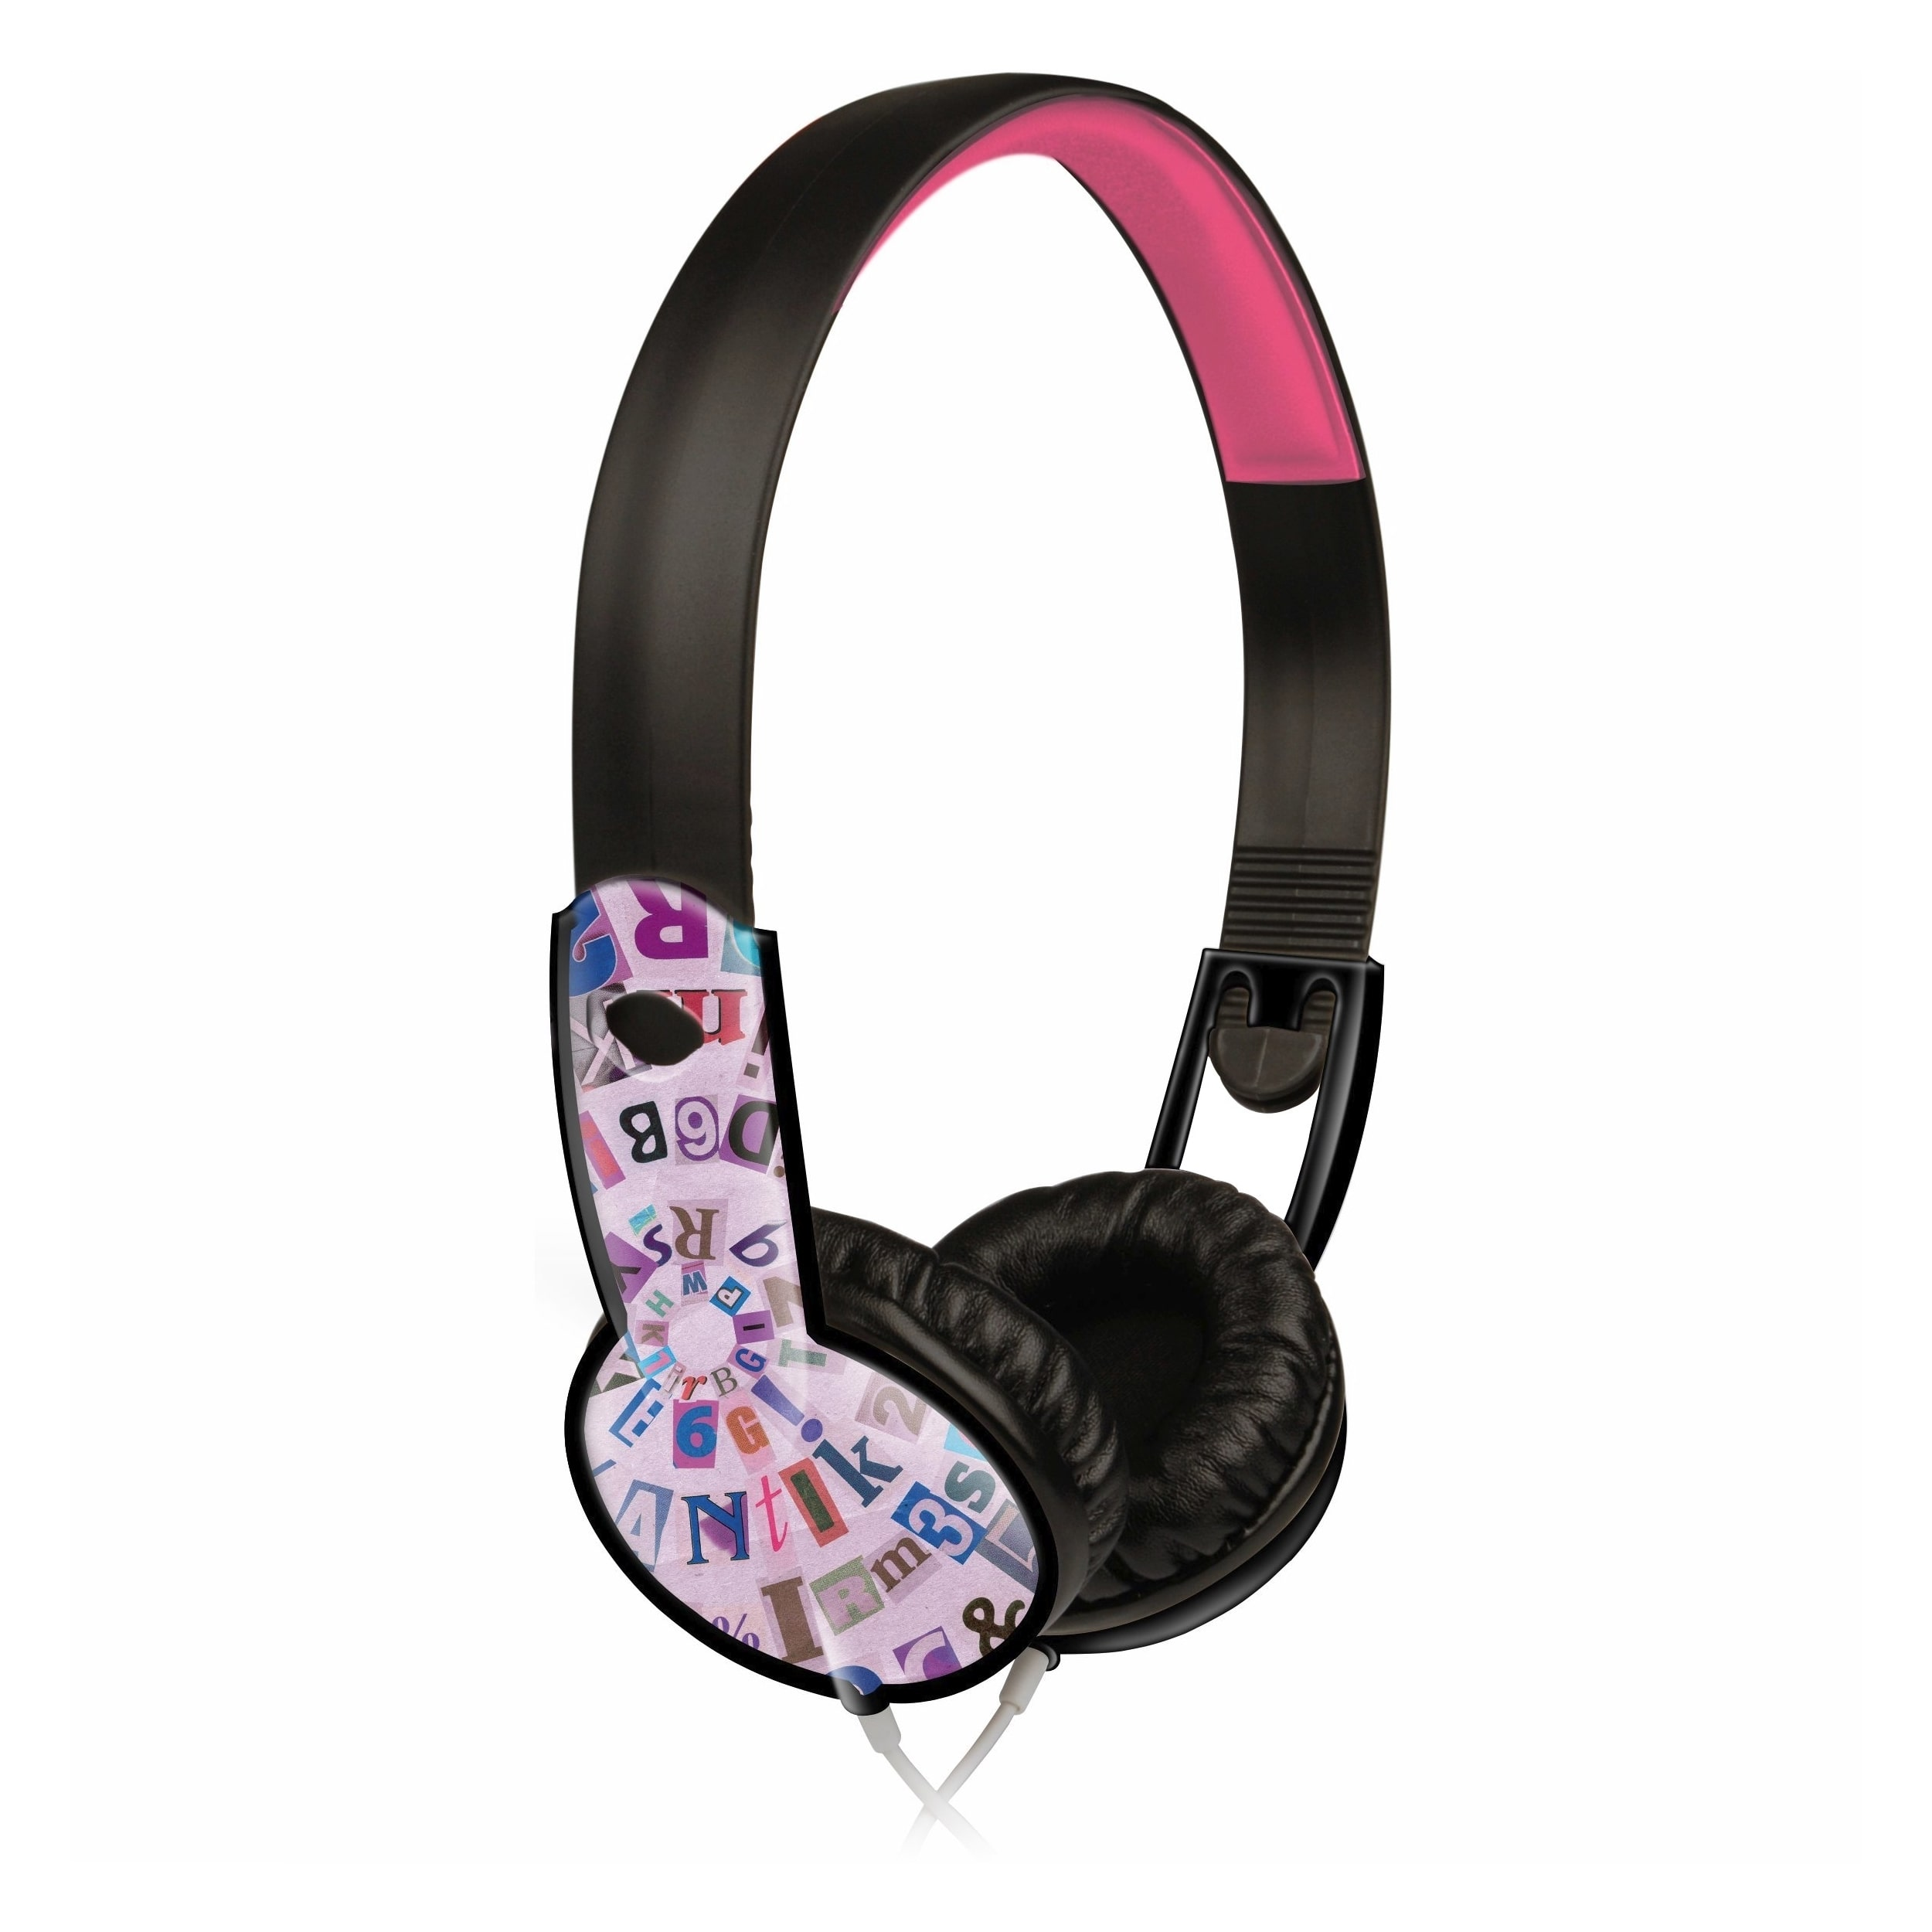 Zip Up Headphones Maxell Headphones Walmartcom